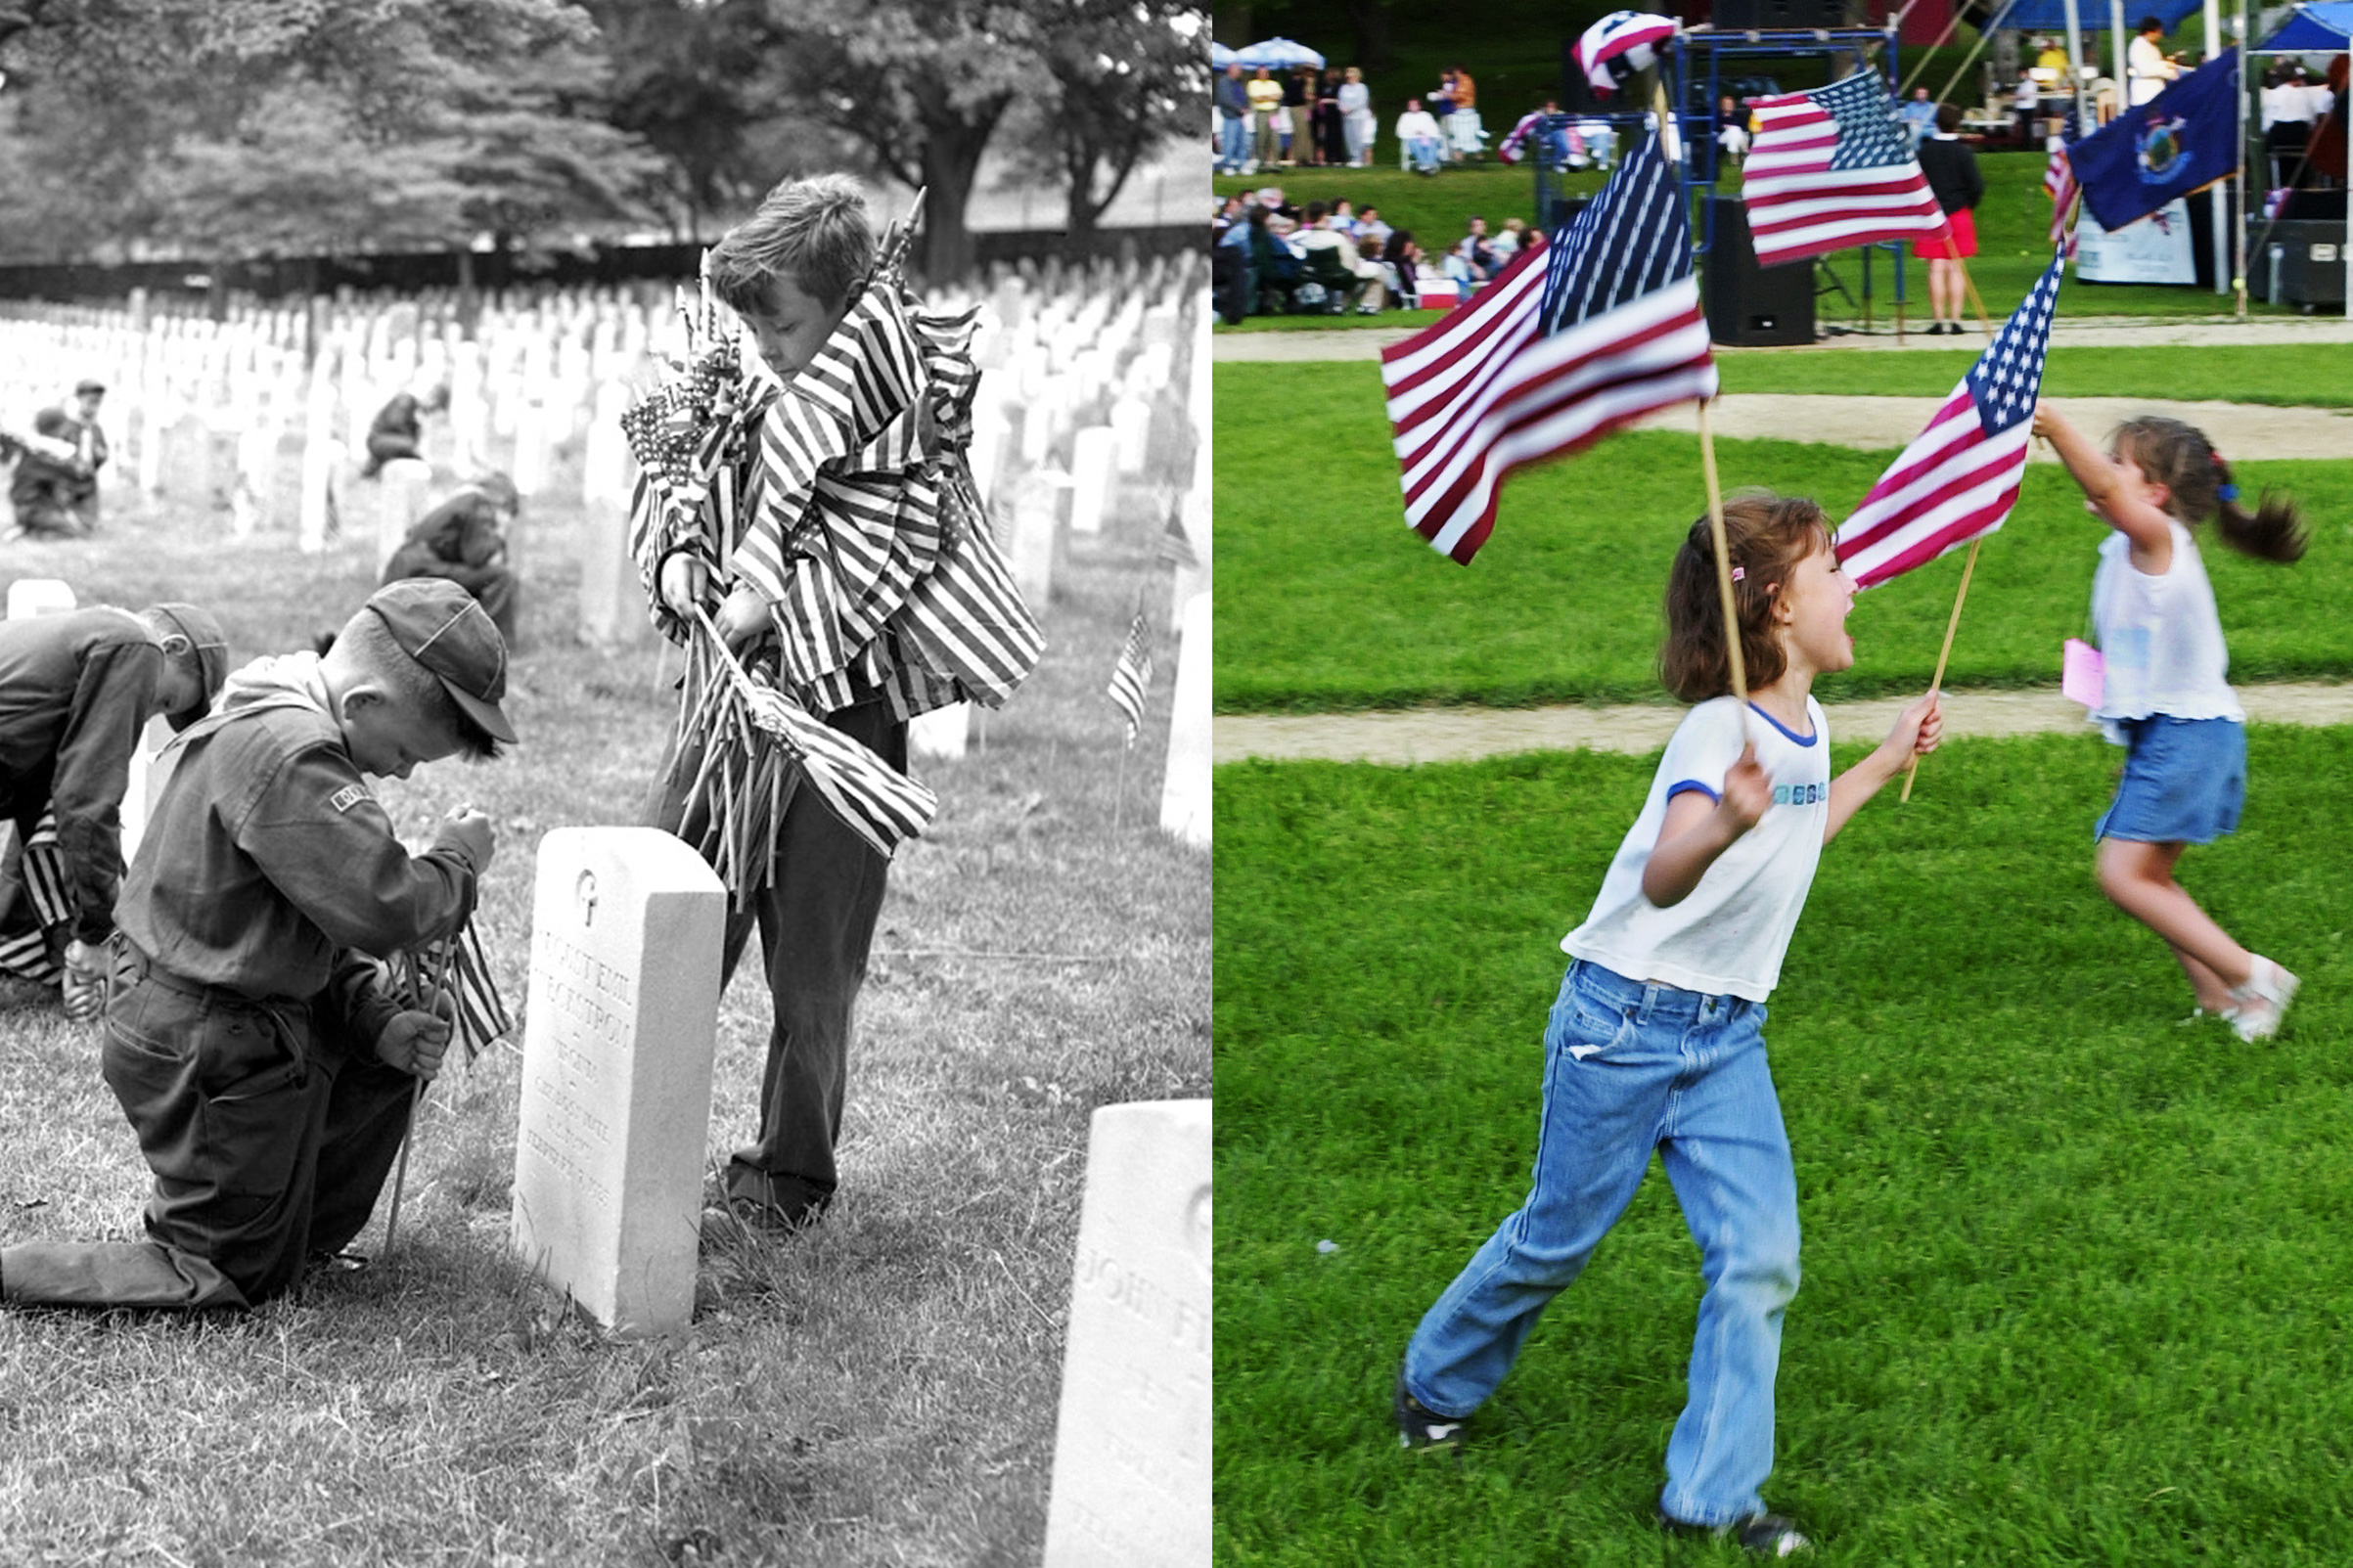 (L-R): Boy Scouts decorating graves for Memorial Day, 1955; Two young girls running around with American Flags from Memorial Day, 2001.